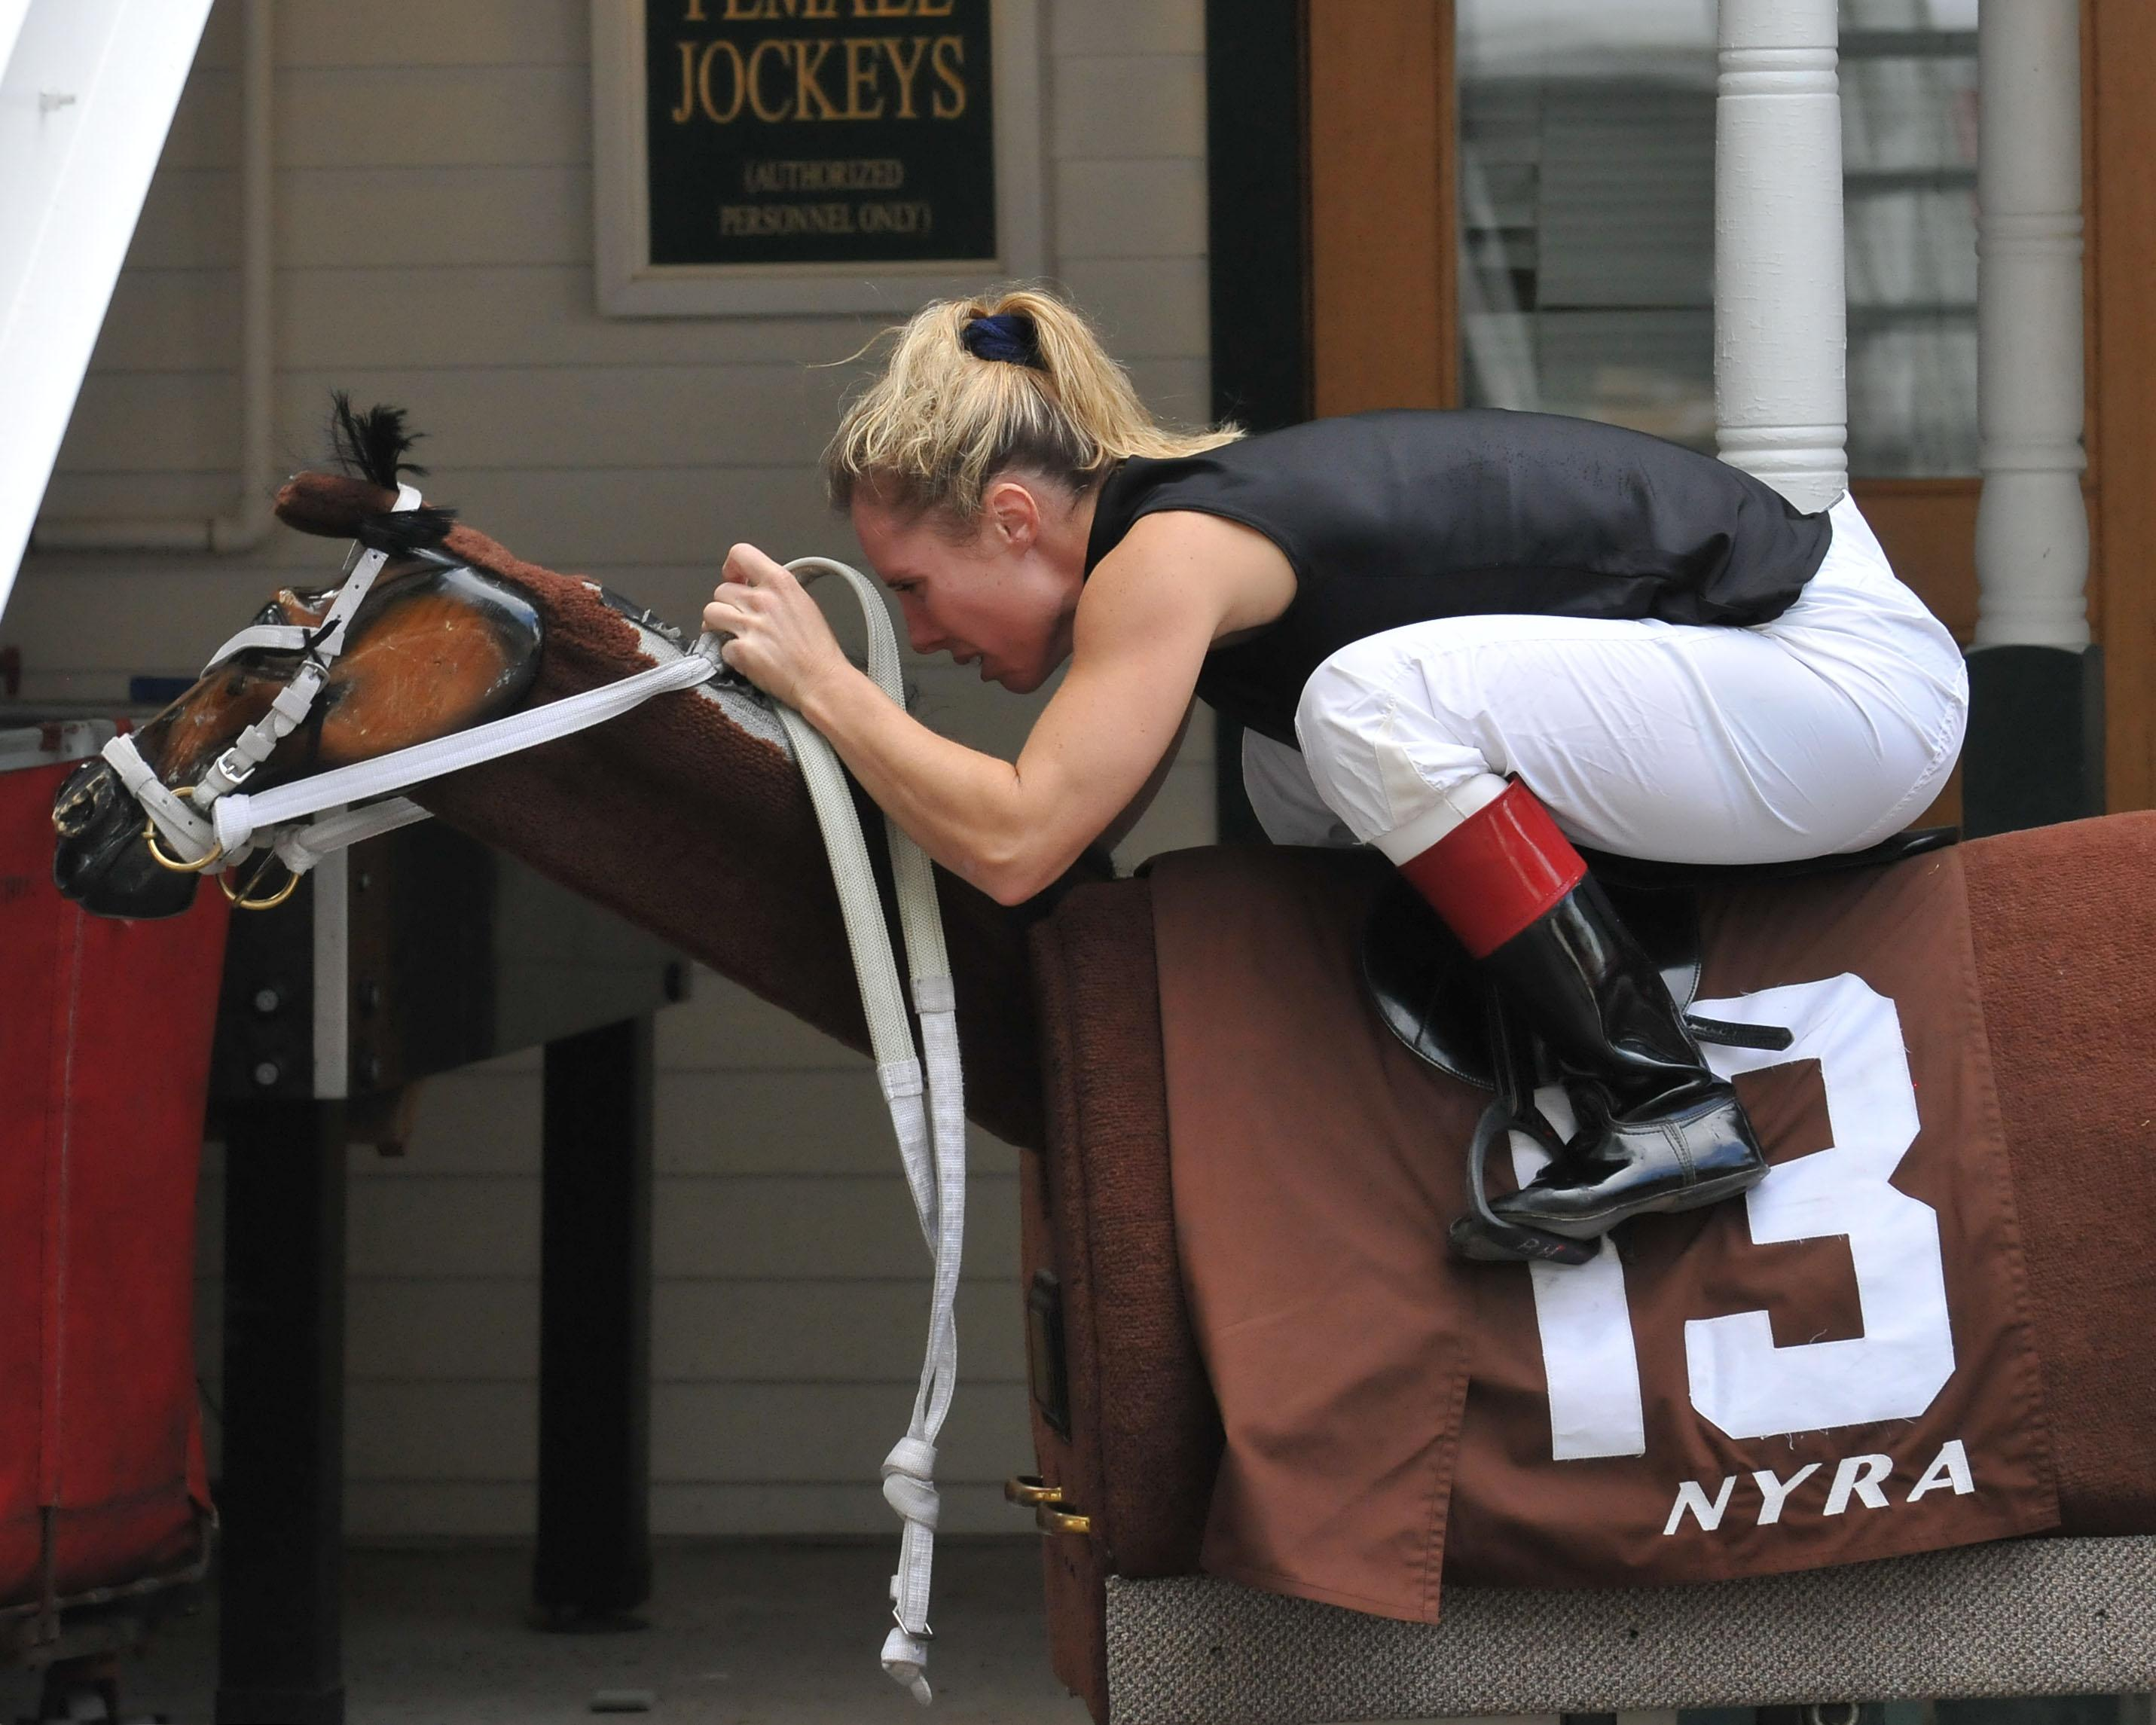 Homeister warms up on the Equicizer.